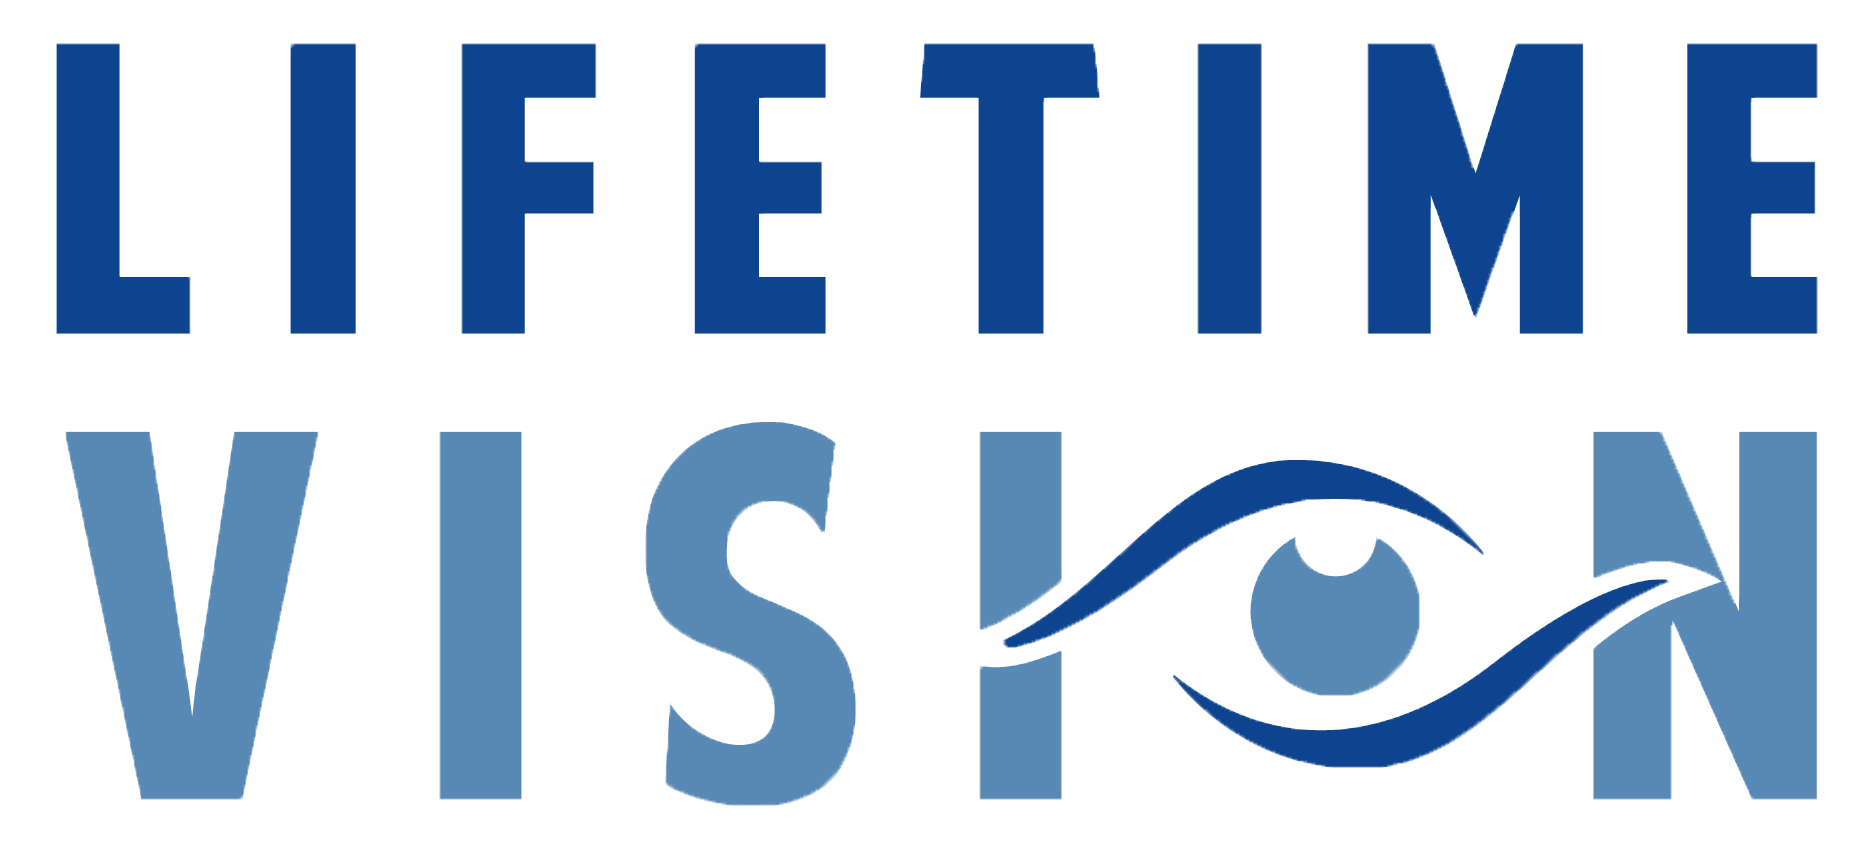 Lifetime Vision, LLC